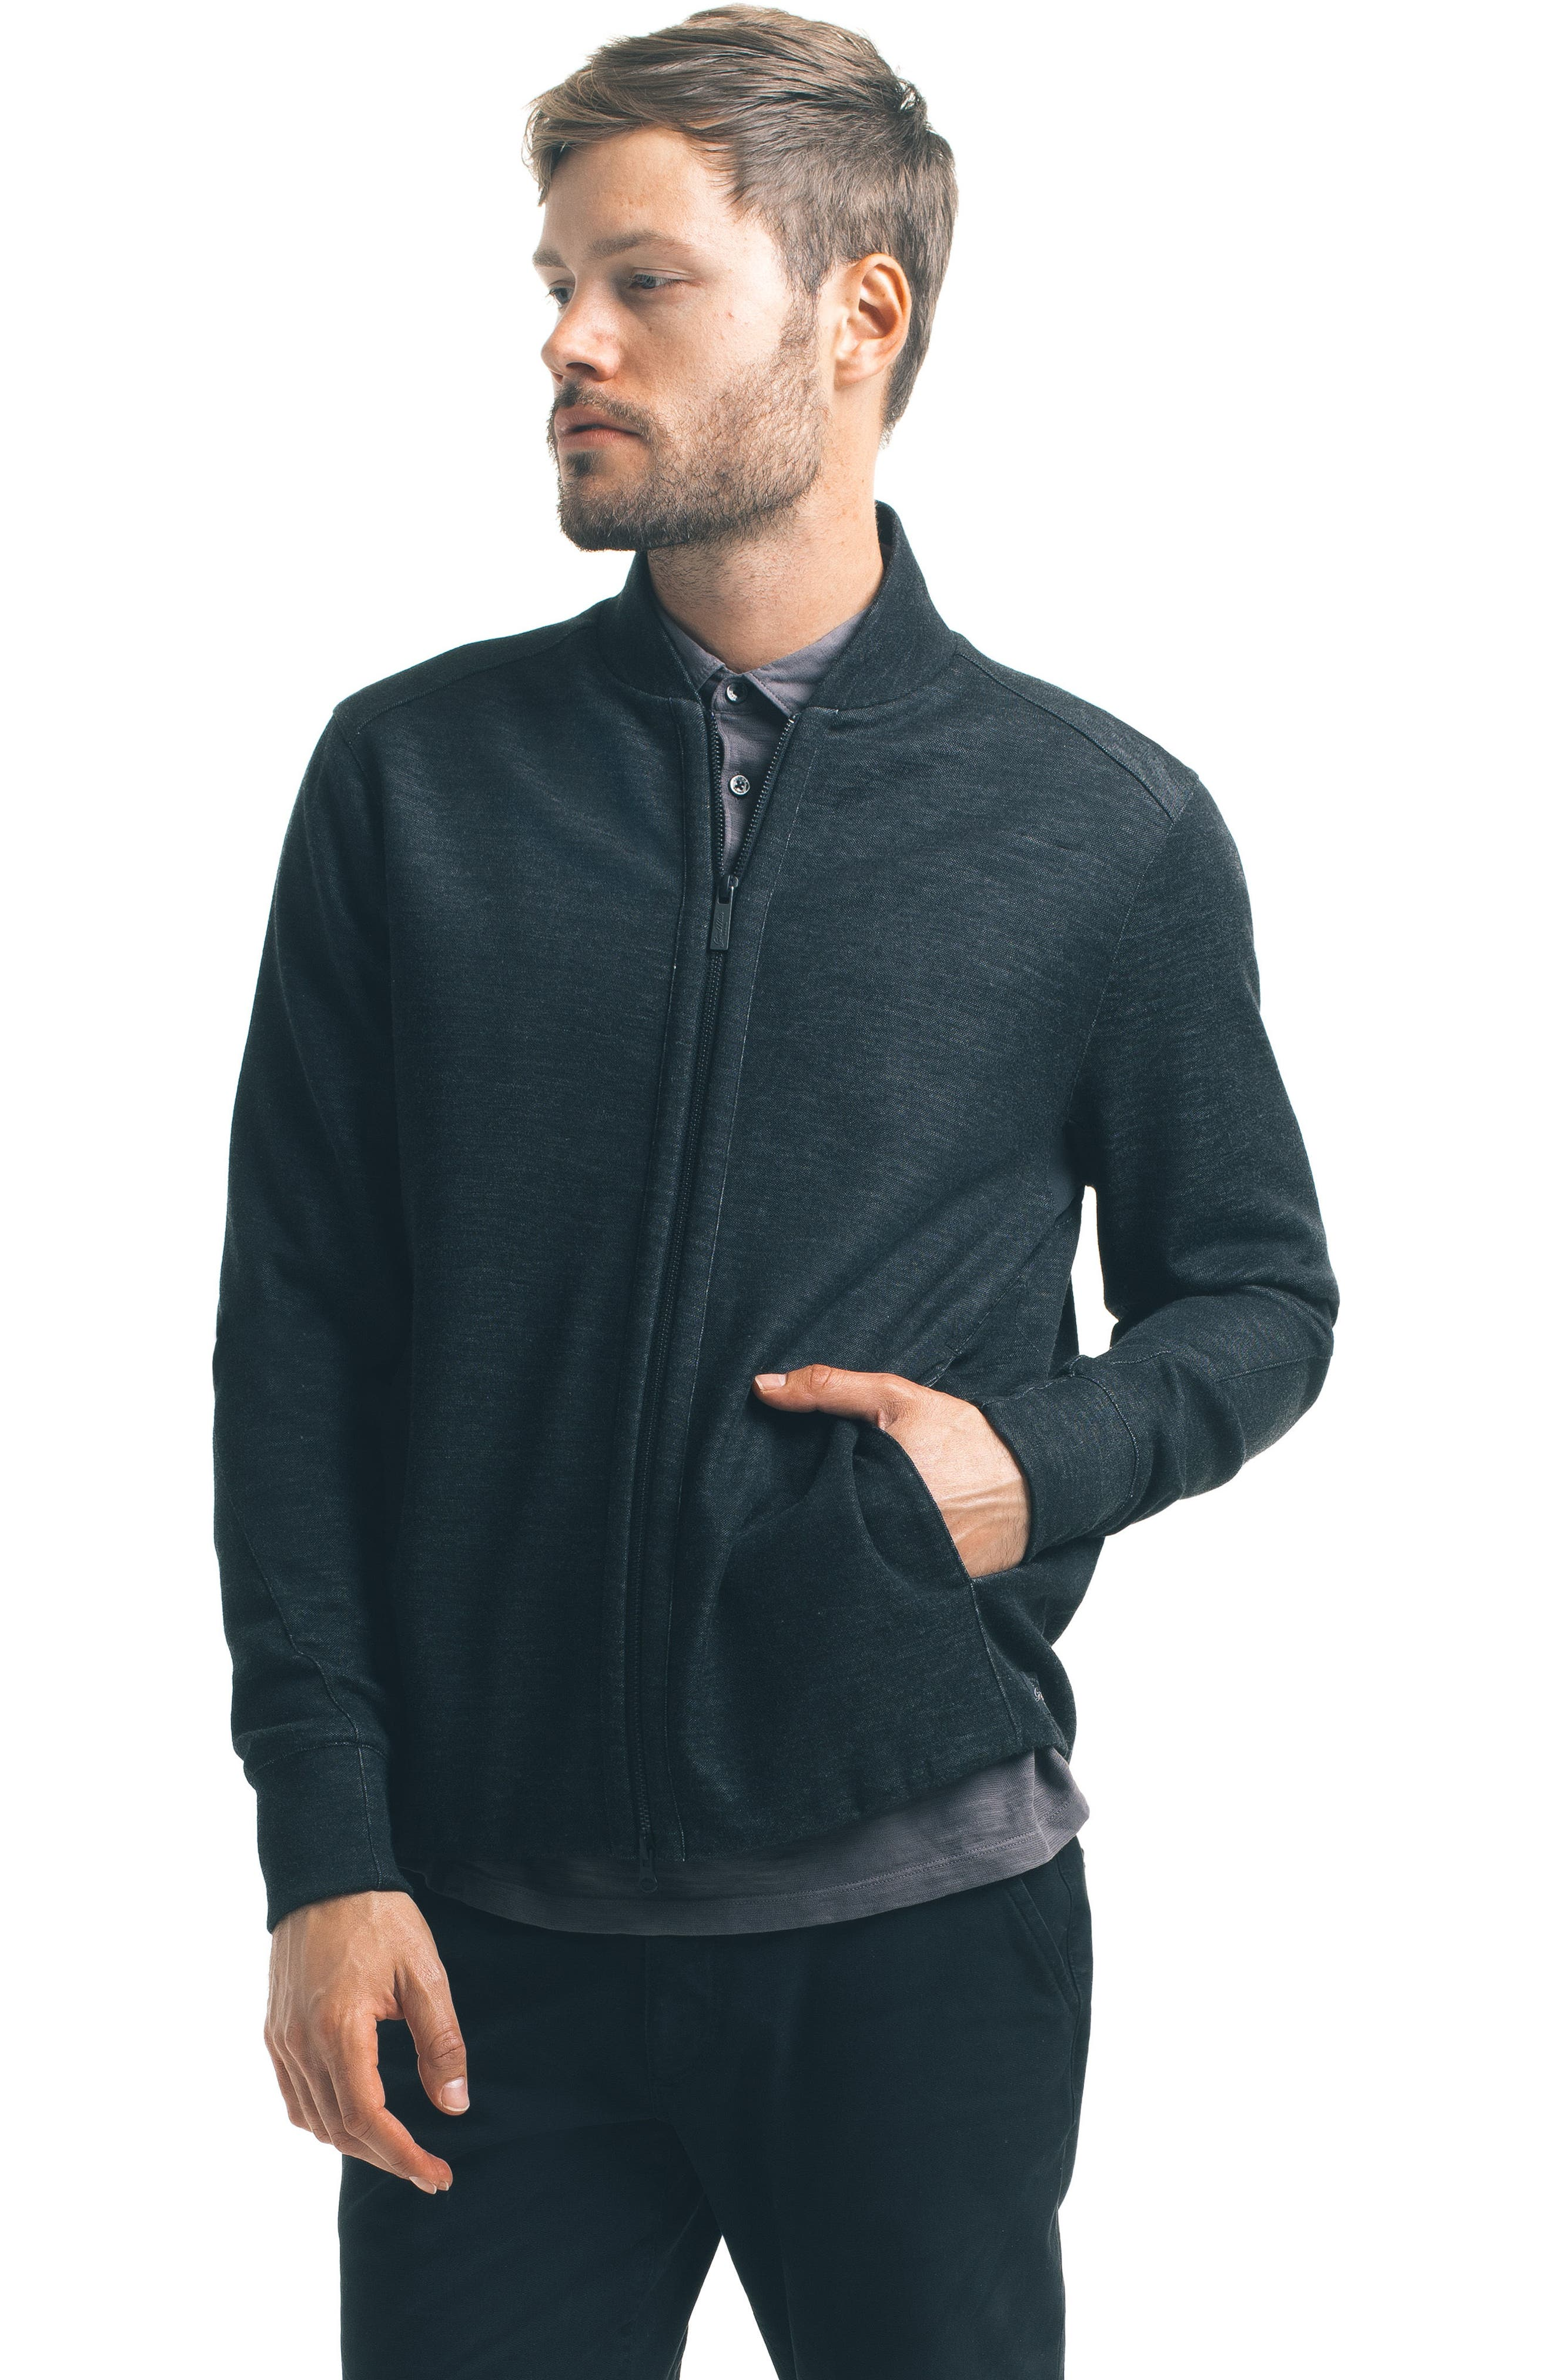 Modern Slim Fit Bomber Jacket,                             Alternate thumbnail 5, color,                             001